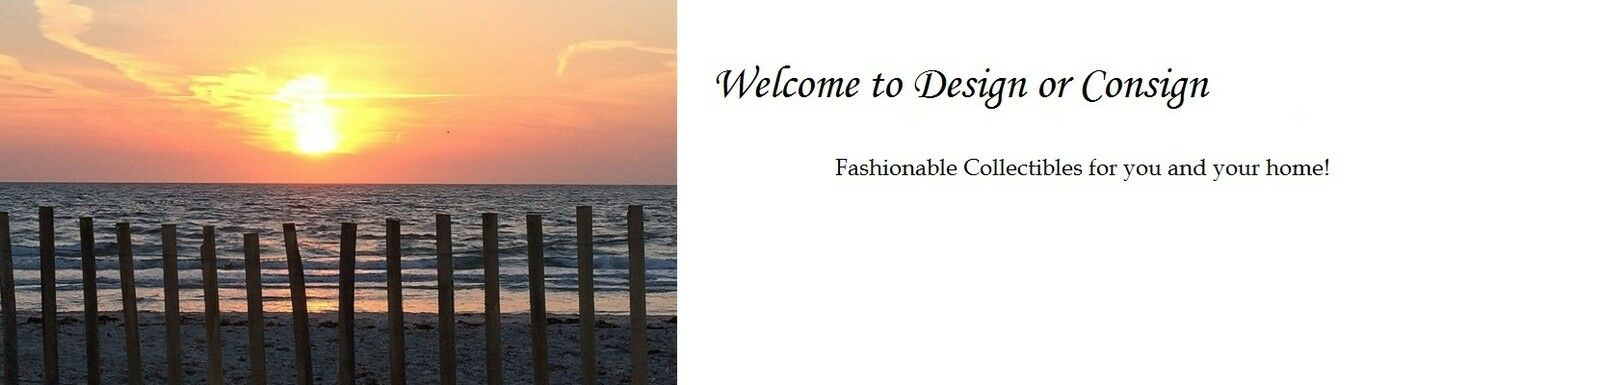 Design Or Consign